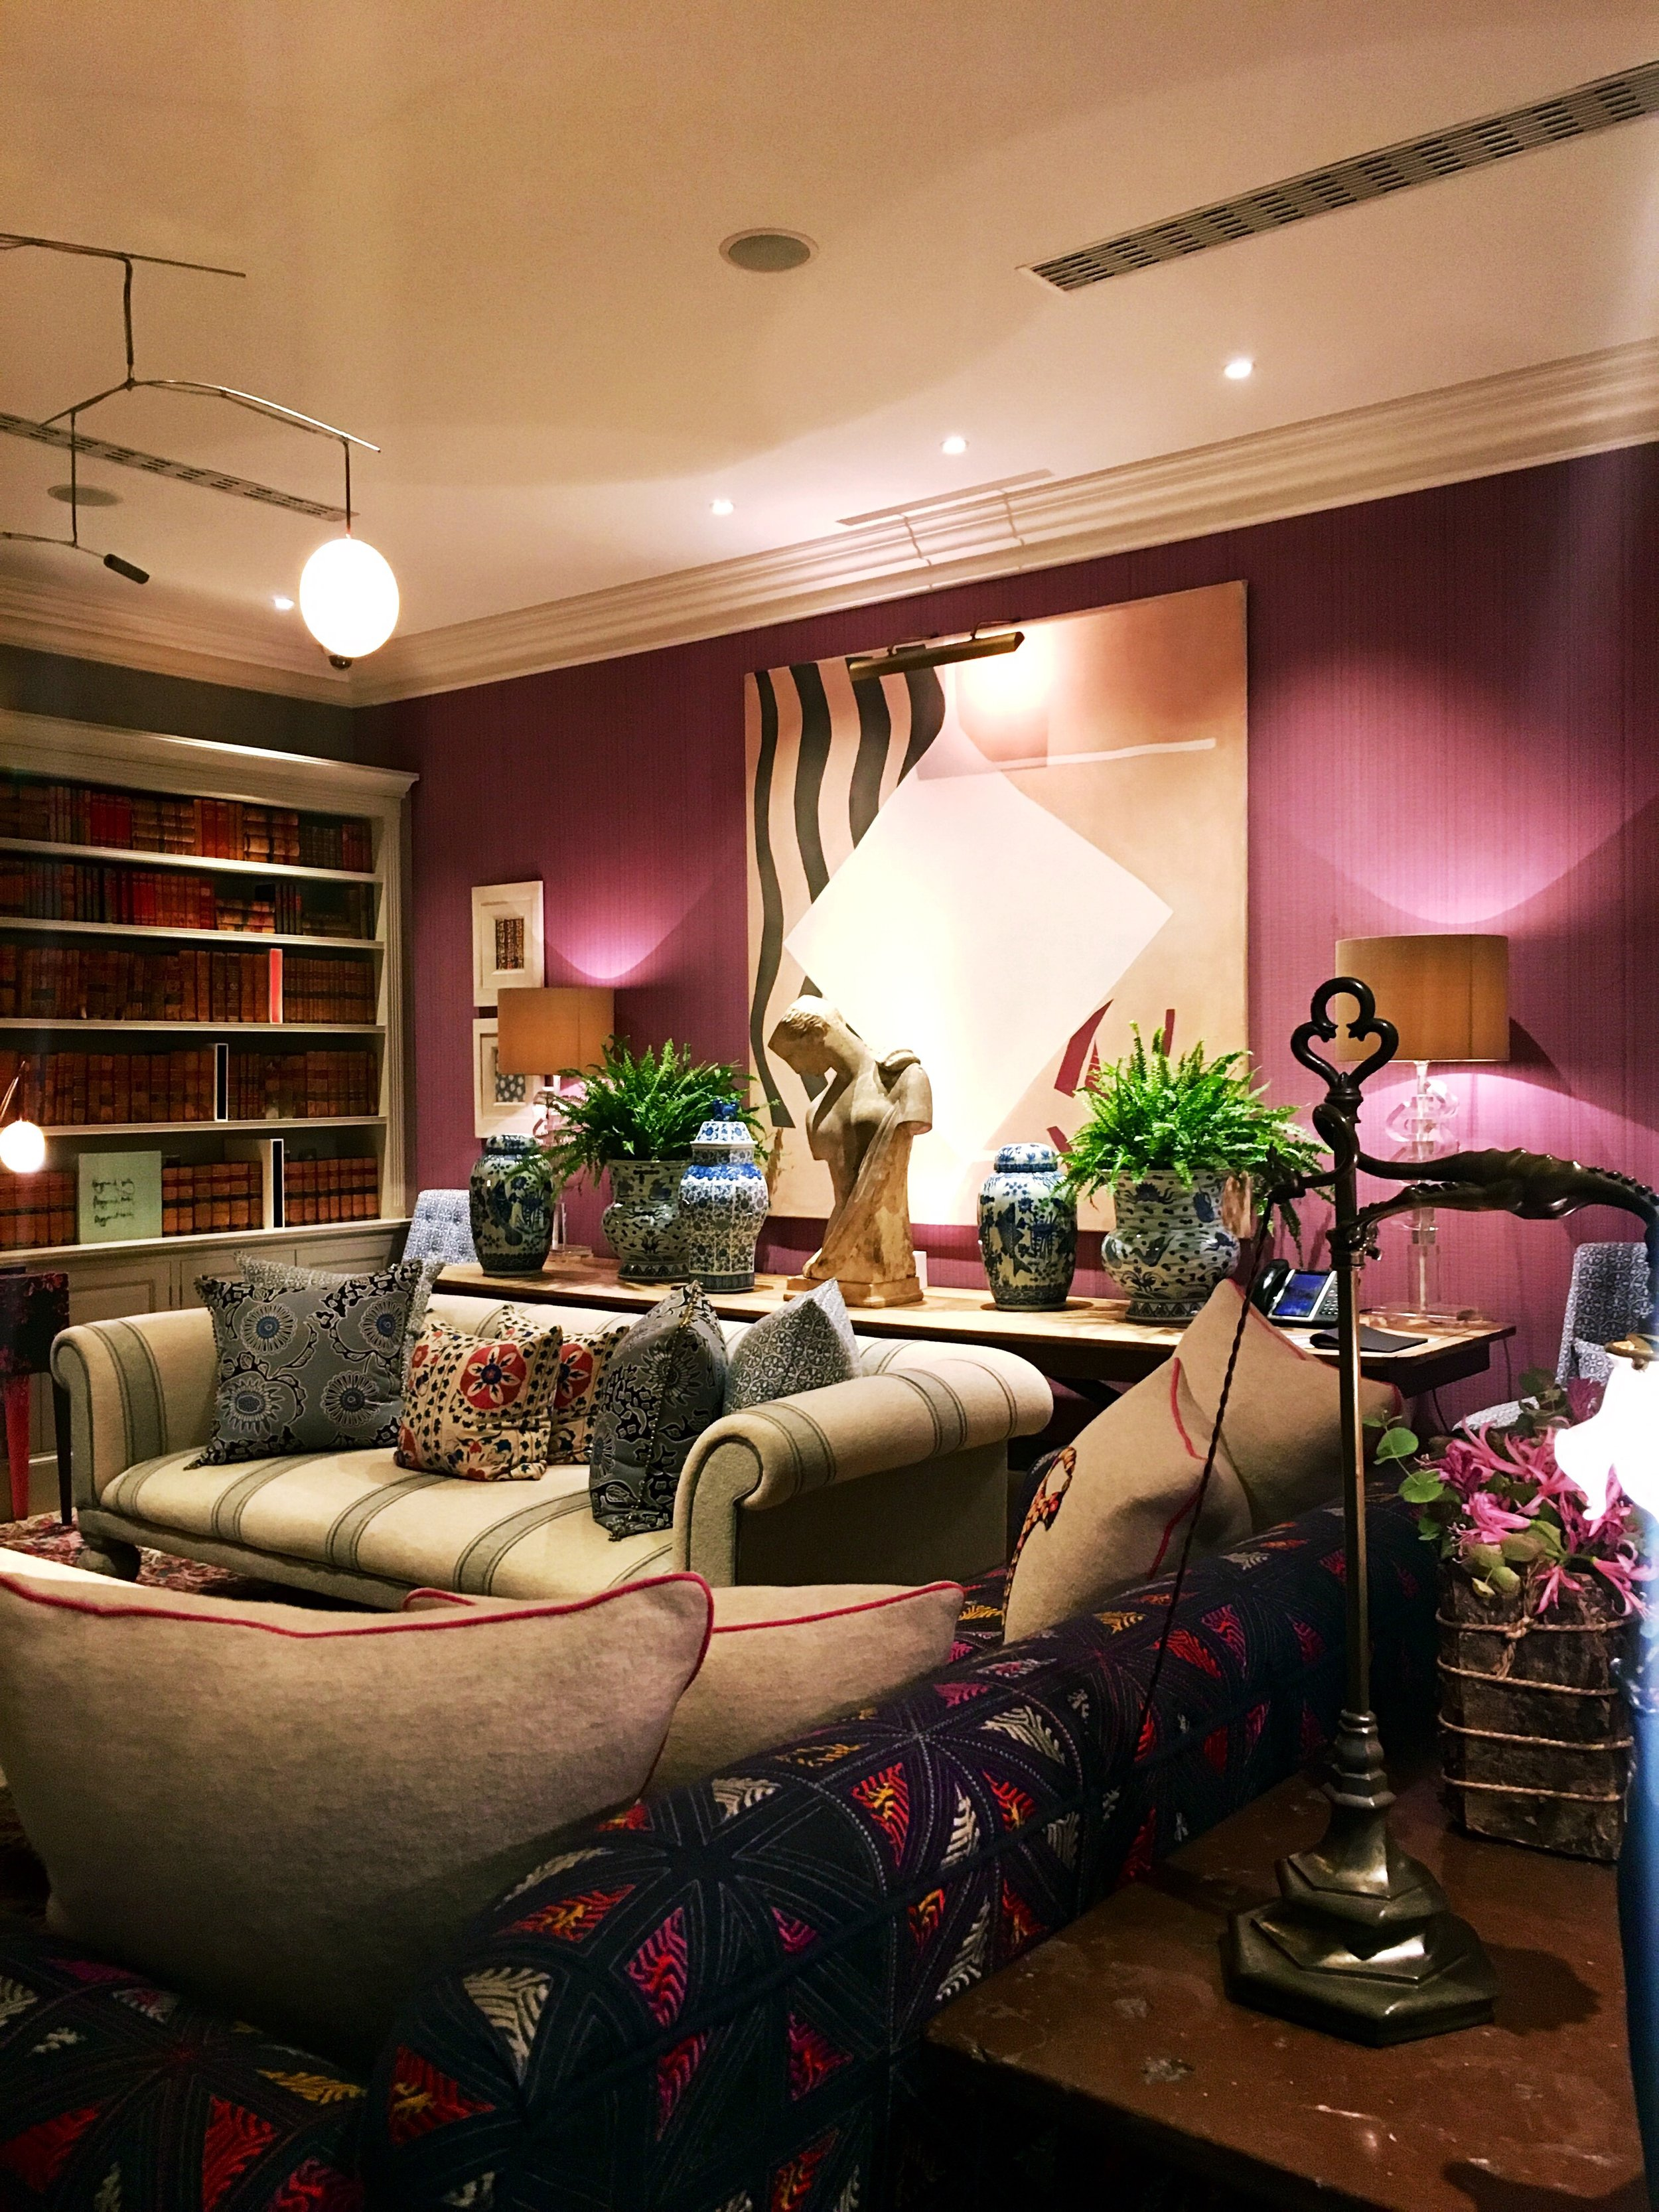 The library at The Haymarket Hotel